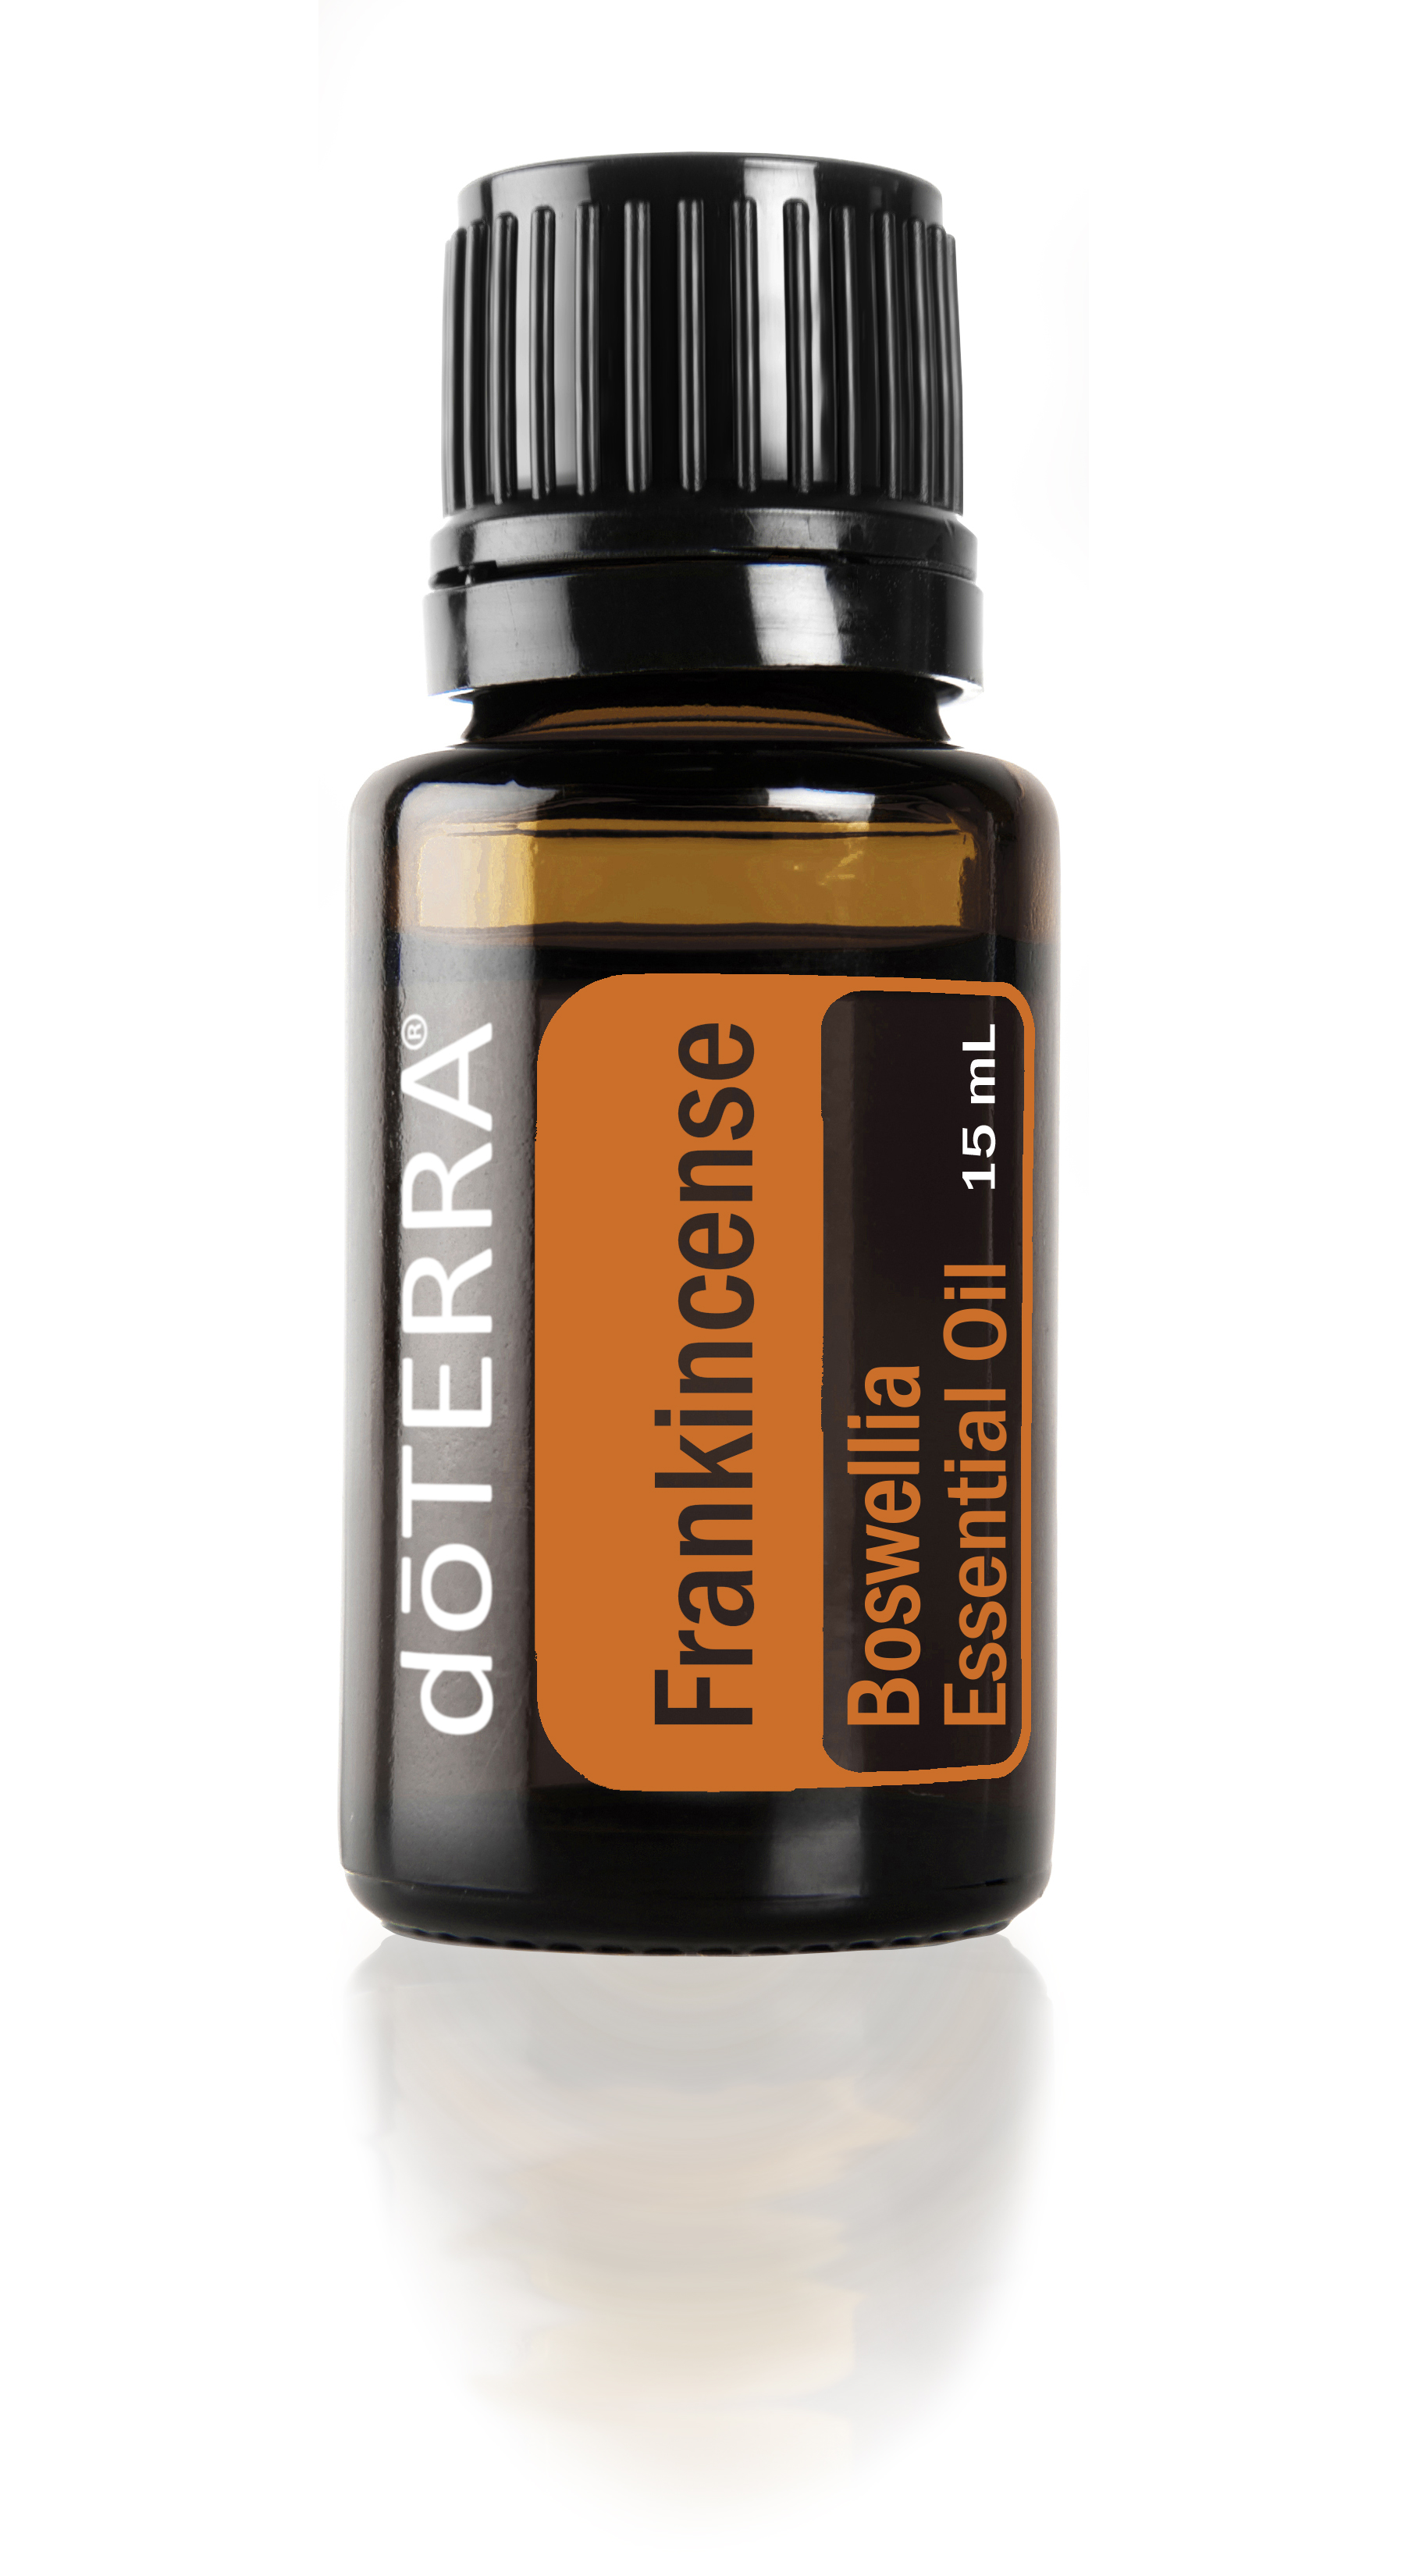 Frankincense Essential Oil - Frankincense is known as the